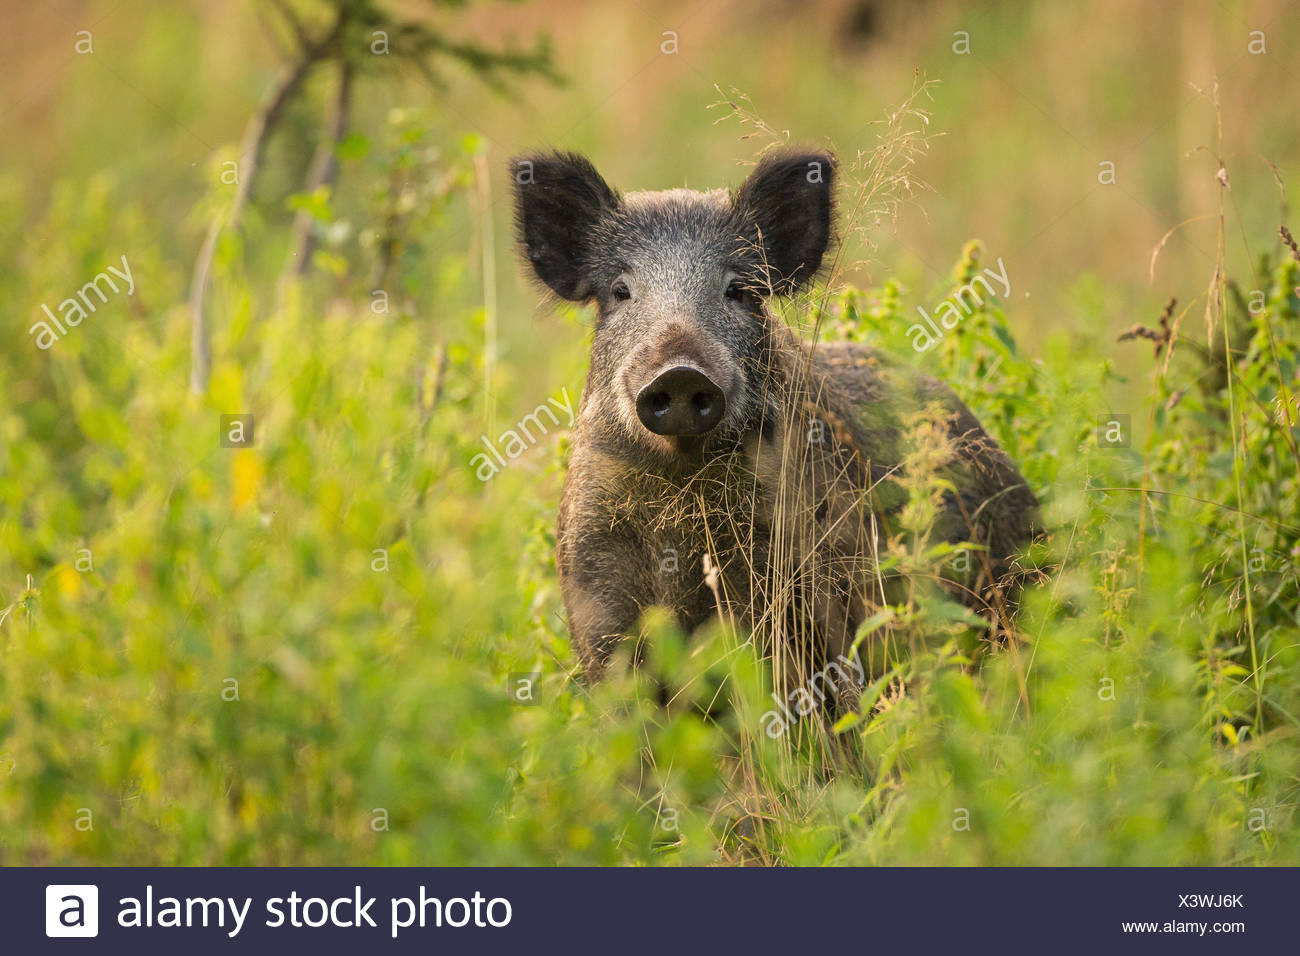 wild boar, pig, wild boar (Sus scrofa), standing on a clearing, Germany - Stock Image